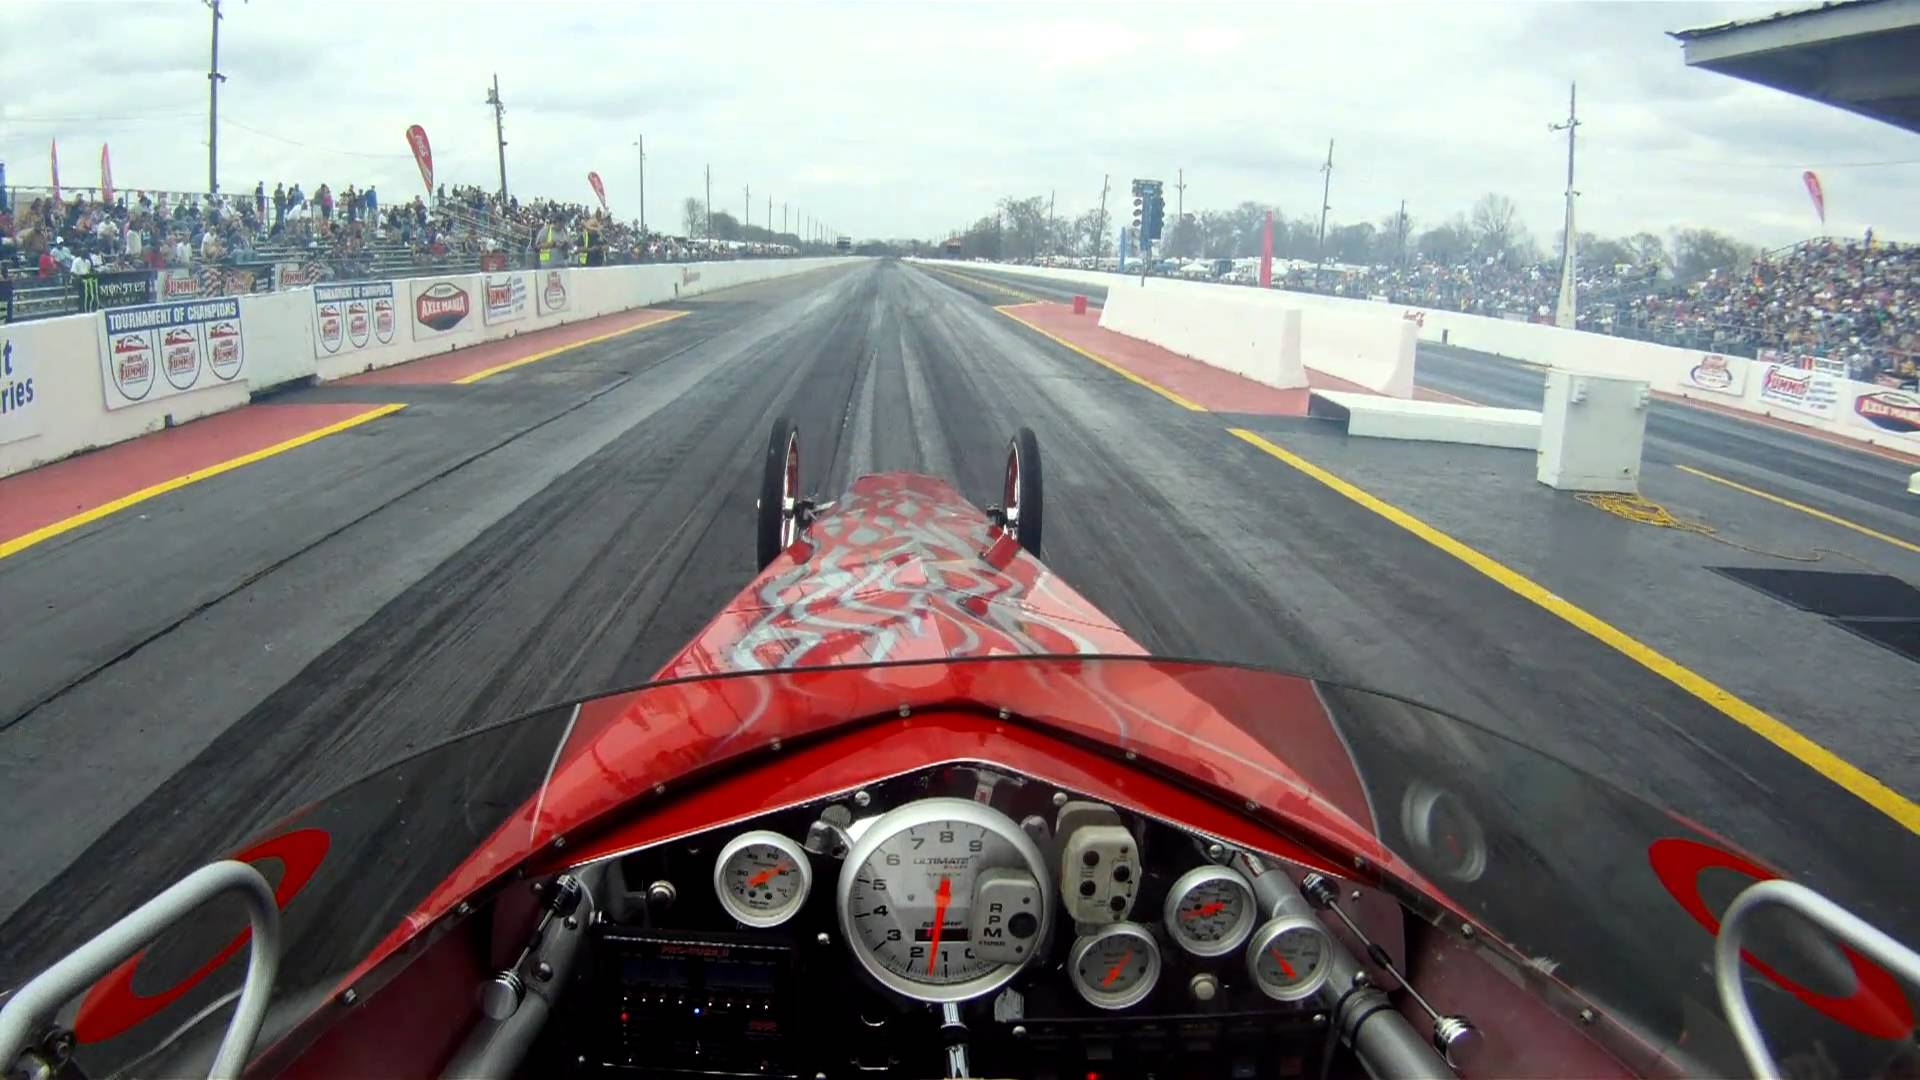 GoPro HD Hero: Top Dragster 6.60 @ 208 mph!